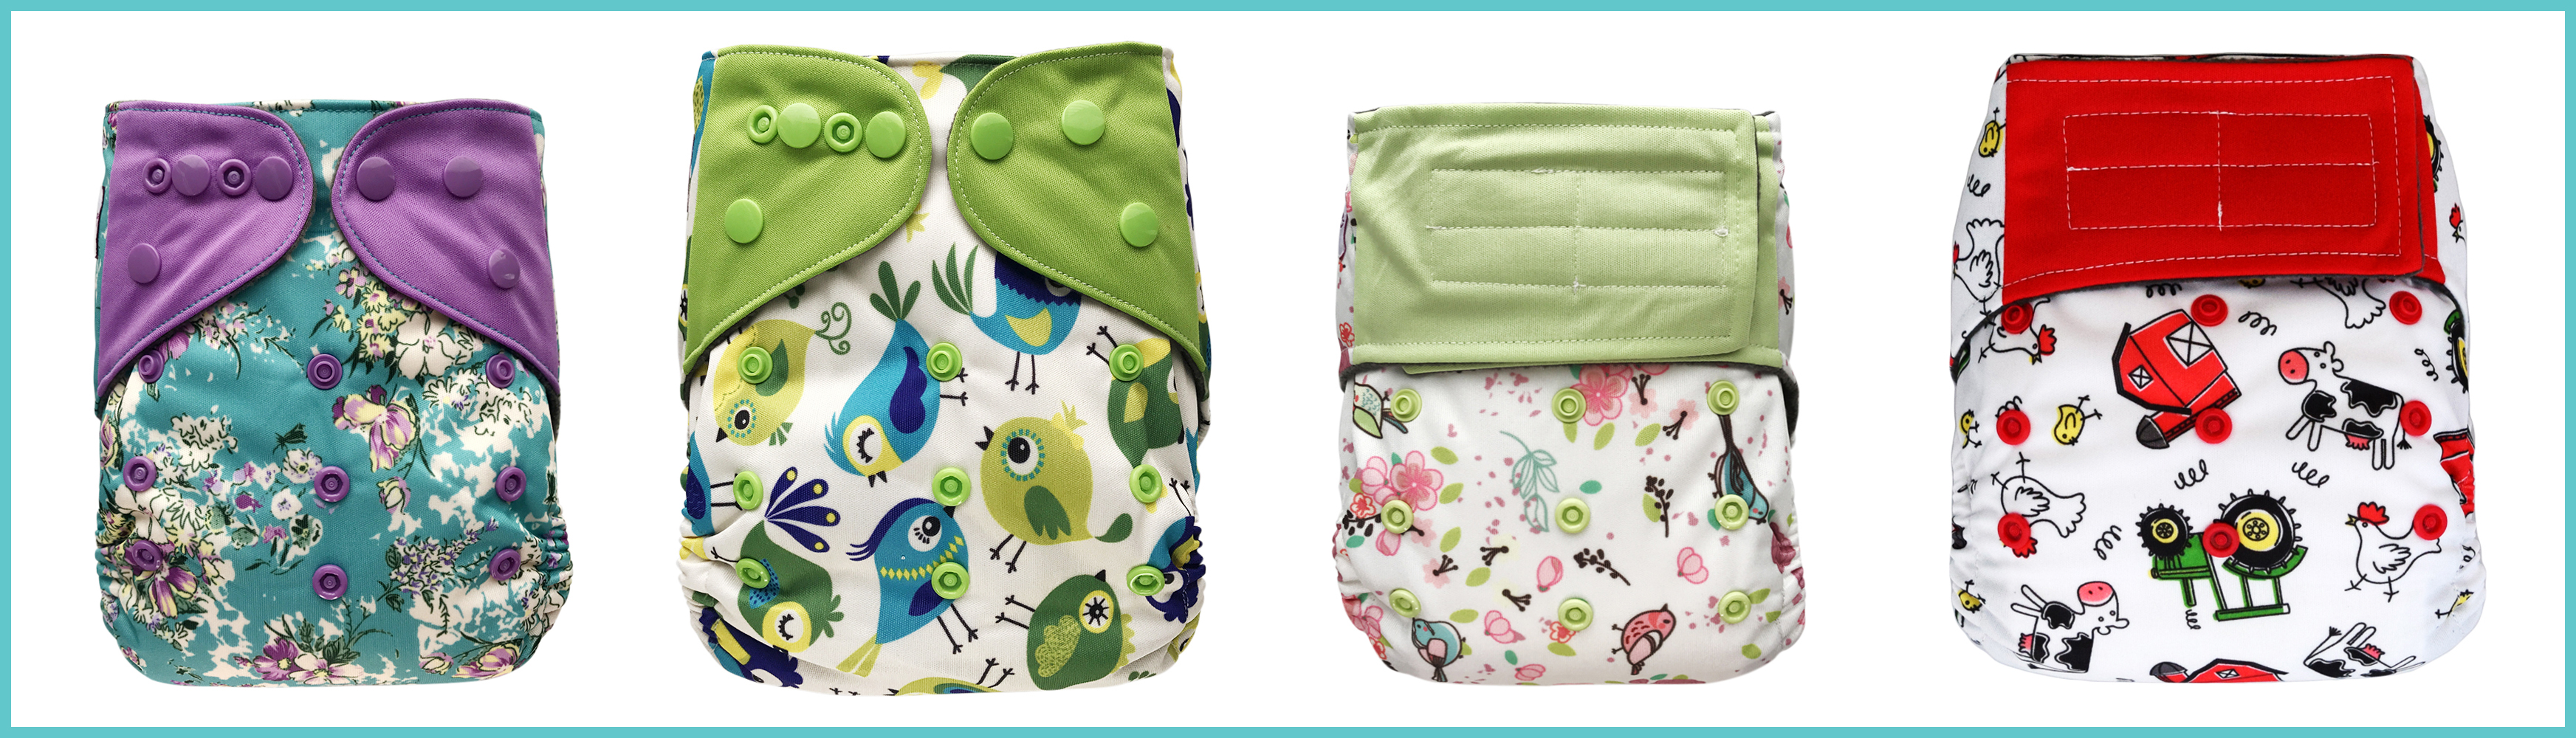 aio-cloth-diaper-review-jess-is-blessed.jpg